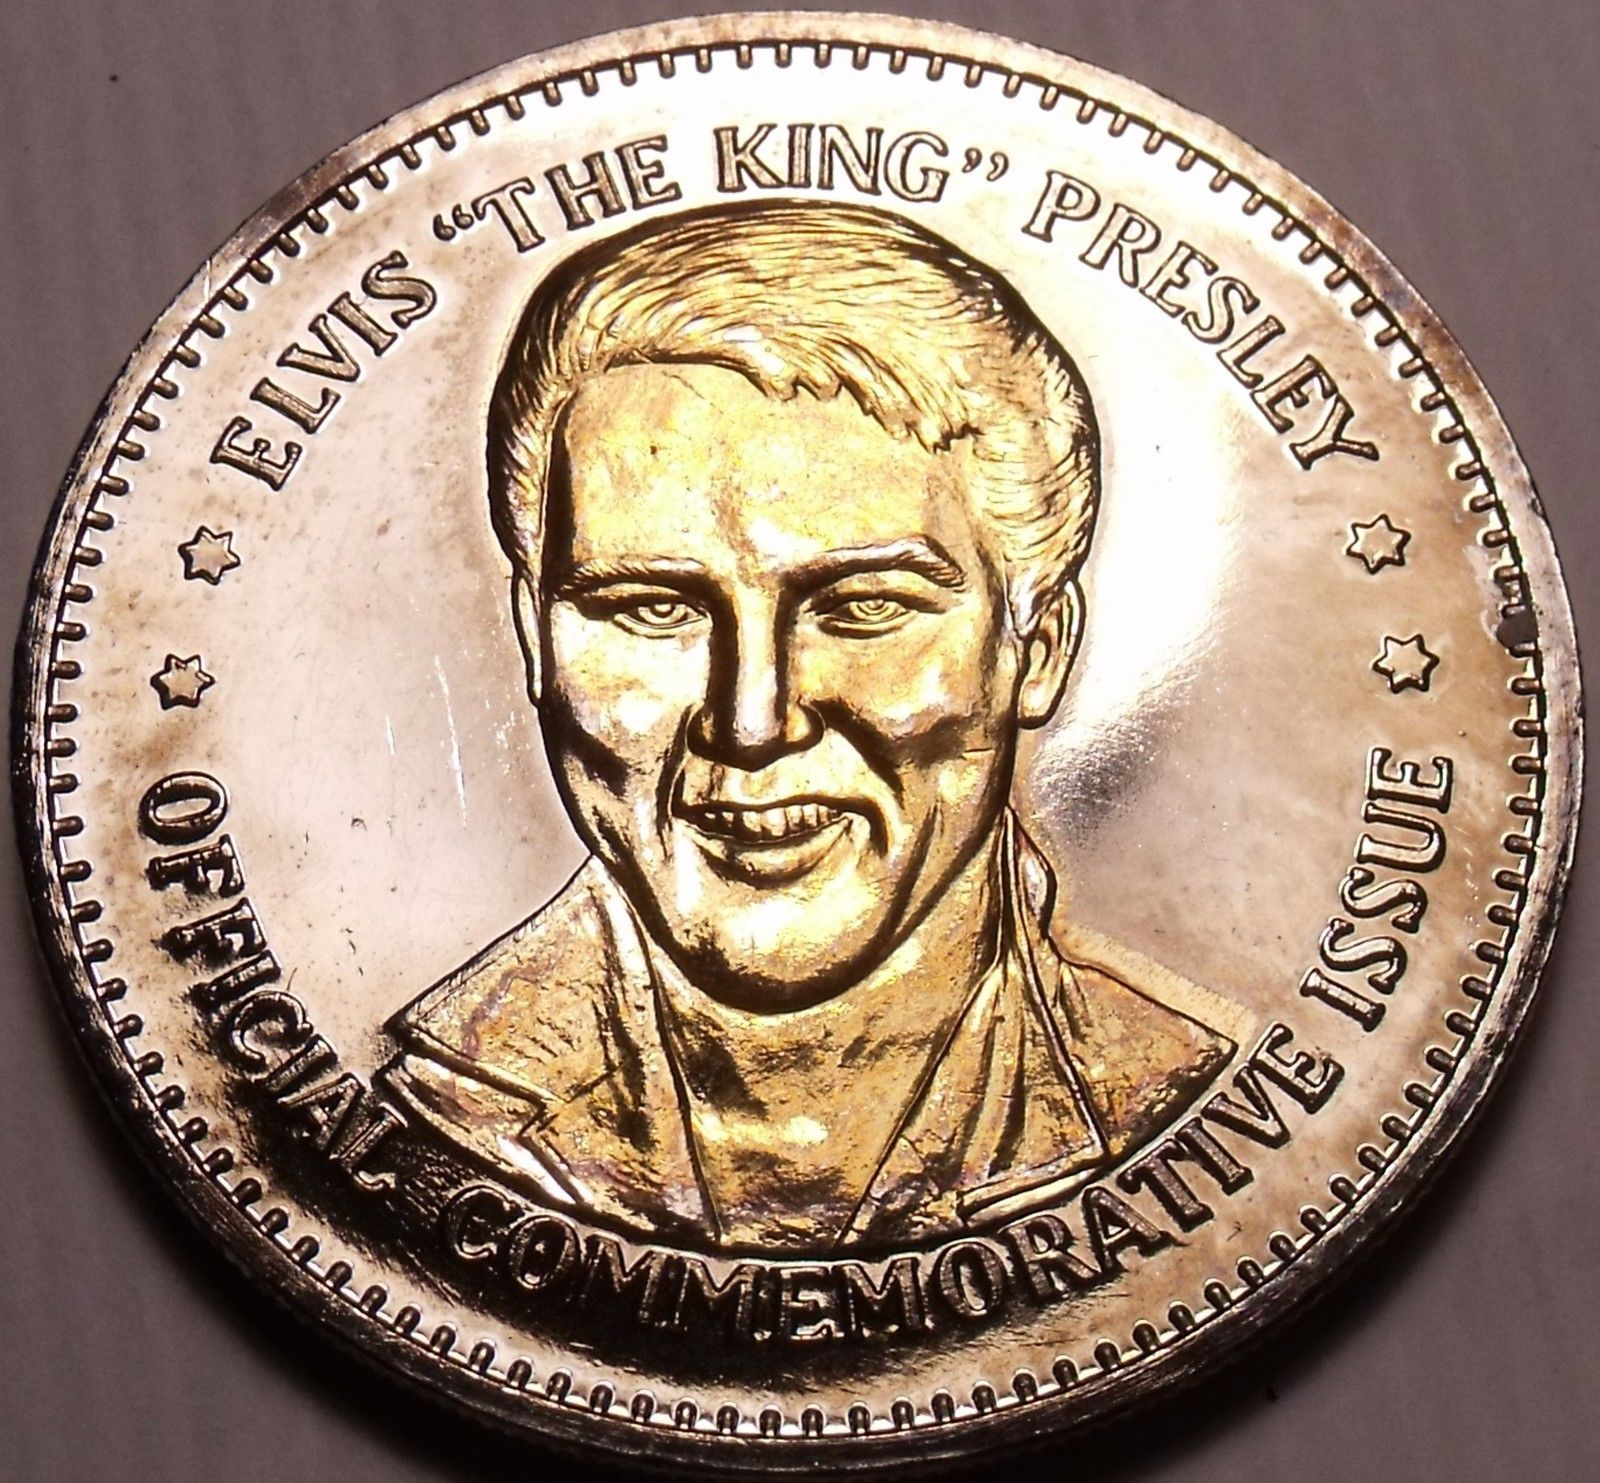 Primary image for Historic Mint Double Eagle Elvis The King Presley Commemorative Medallion~Fr/Shi